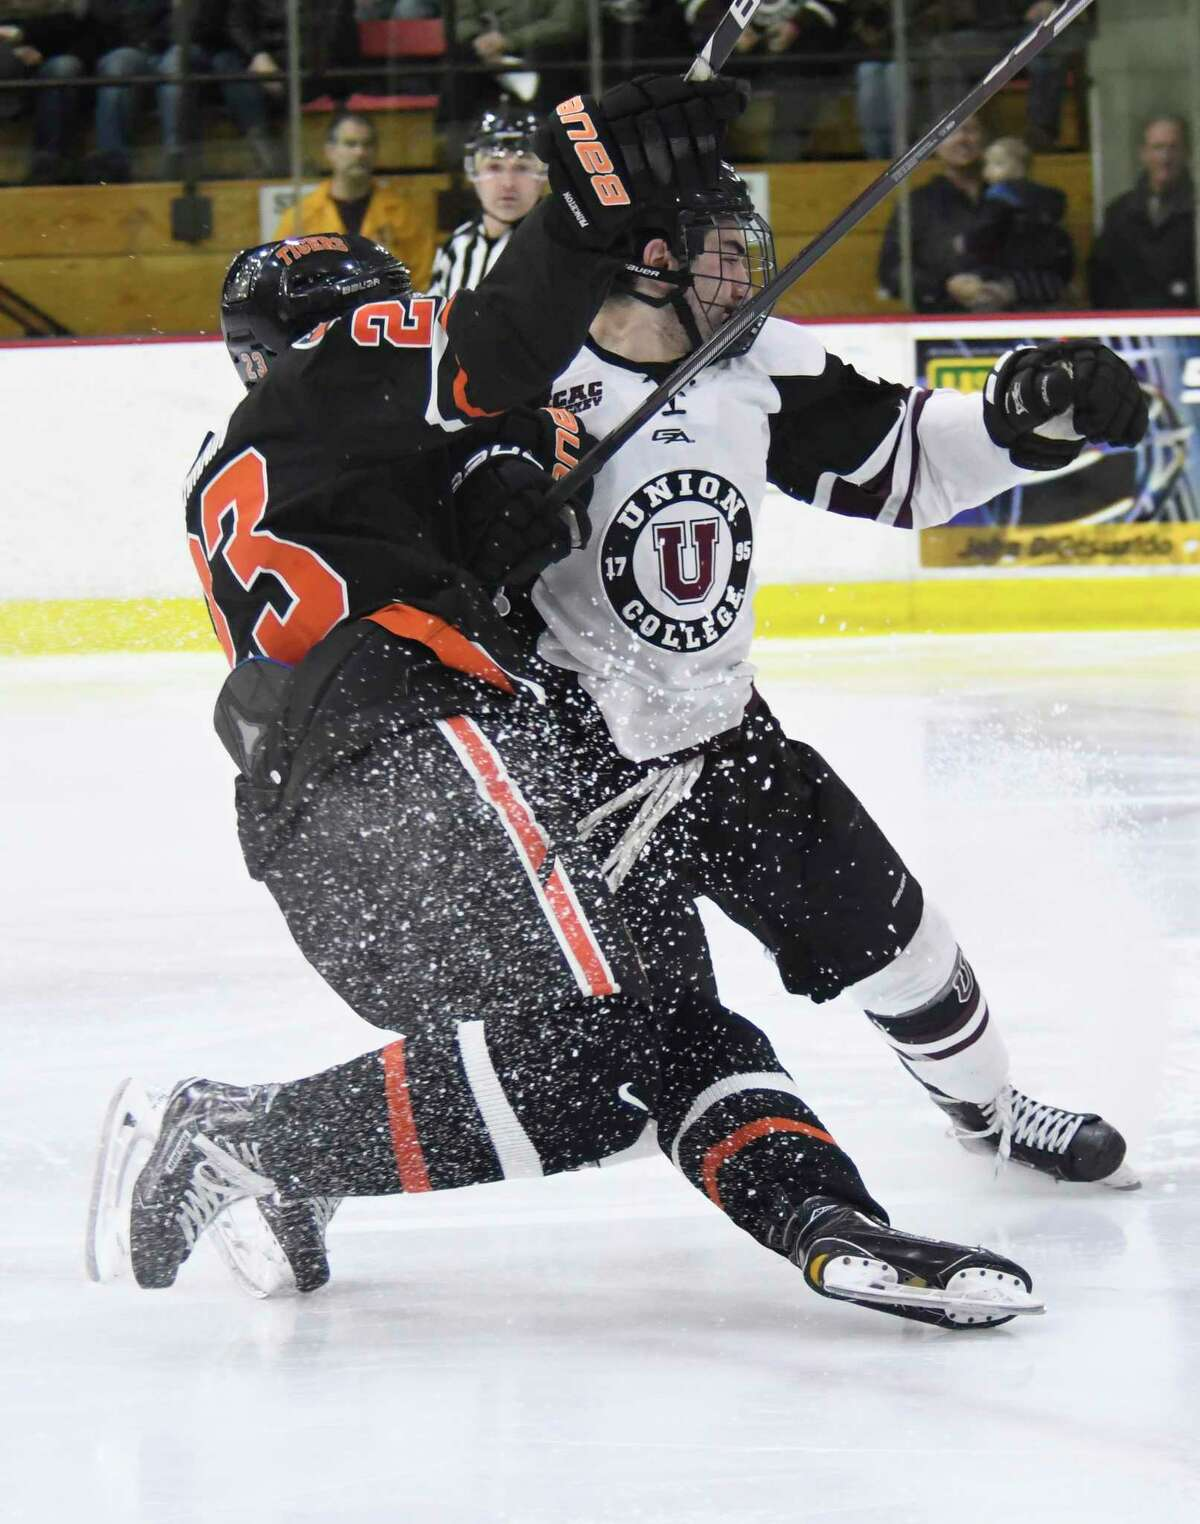 Princeton forward Jeremy Germain and Union defender Joseph Campolieto collide during an ECAC playoff game in Schenectady, N.Y., at Union College on Saturday, Mar. 10, 2018. (Jenn March, Special to the Times Union)